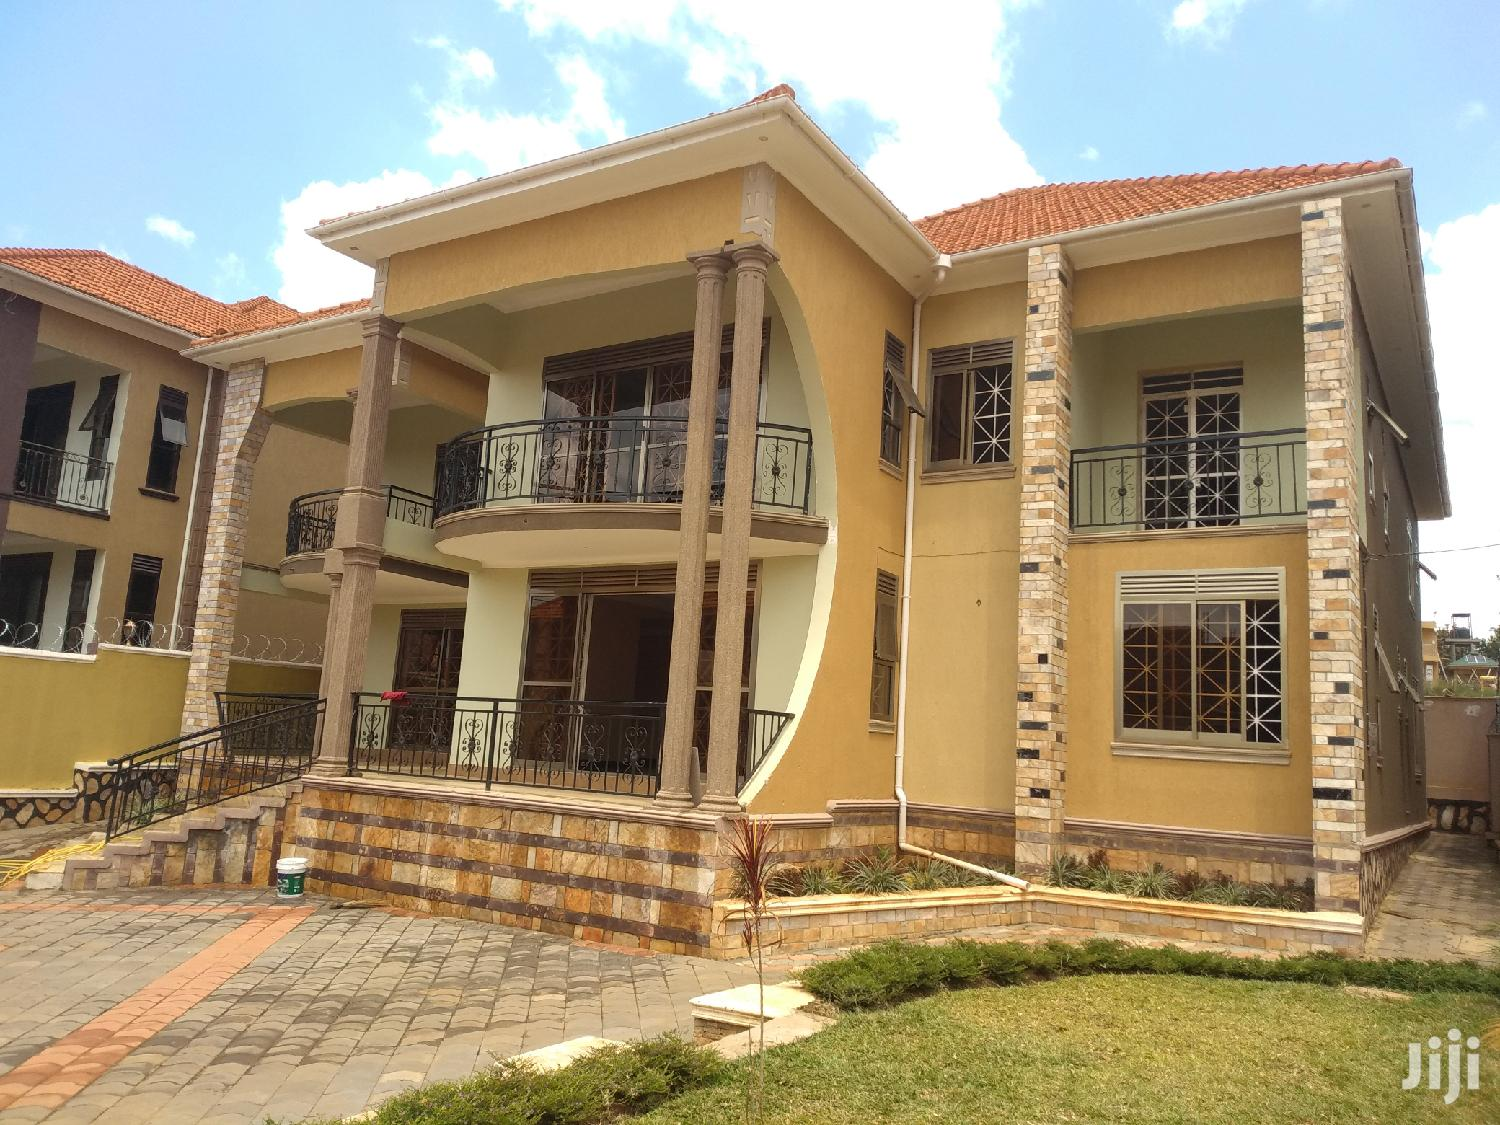 Kira Ntinda Road for Sale With Ready Land Title | Houses & Apartments For Sale for sale in Kampala, Central Region, Uganda